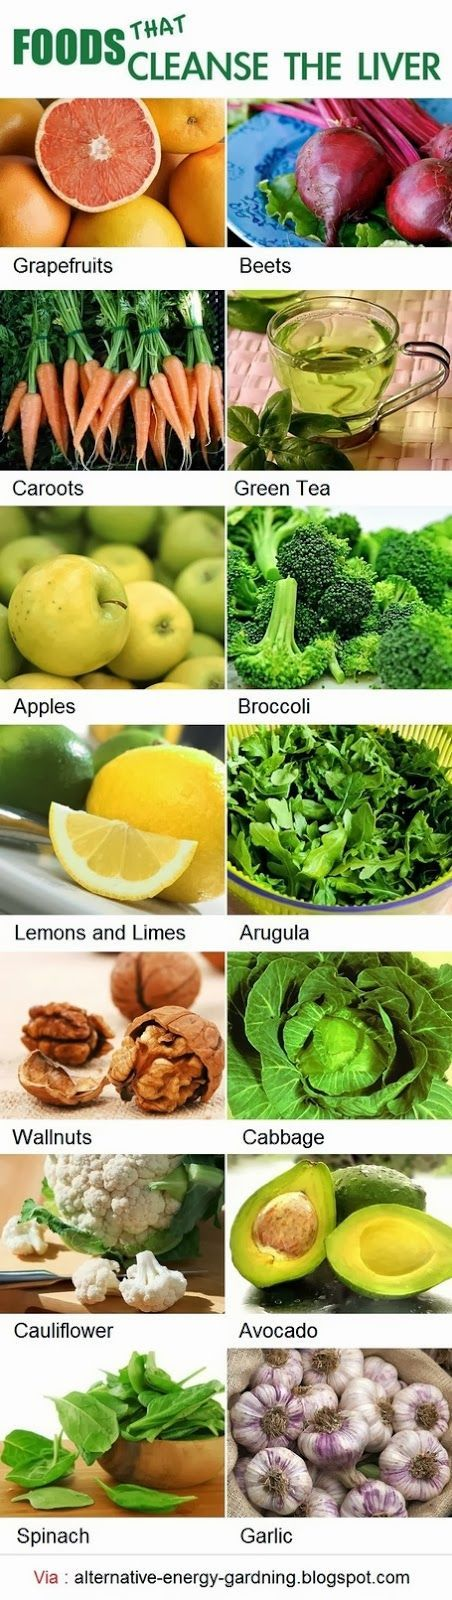 losing belly fat, caloric intake to lose weight, thyroxine weight loss - Foods that cleanse your liver.